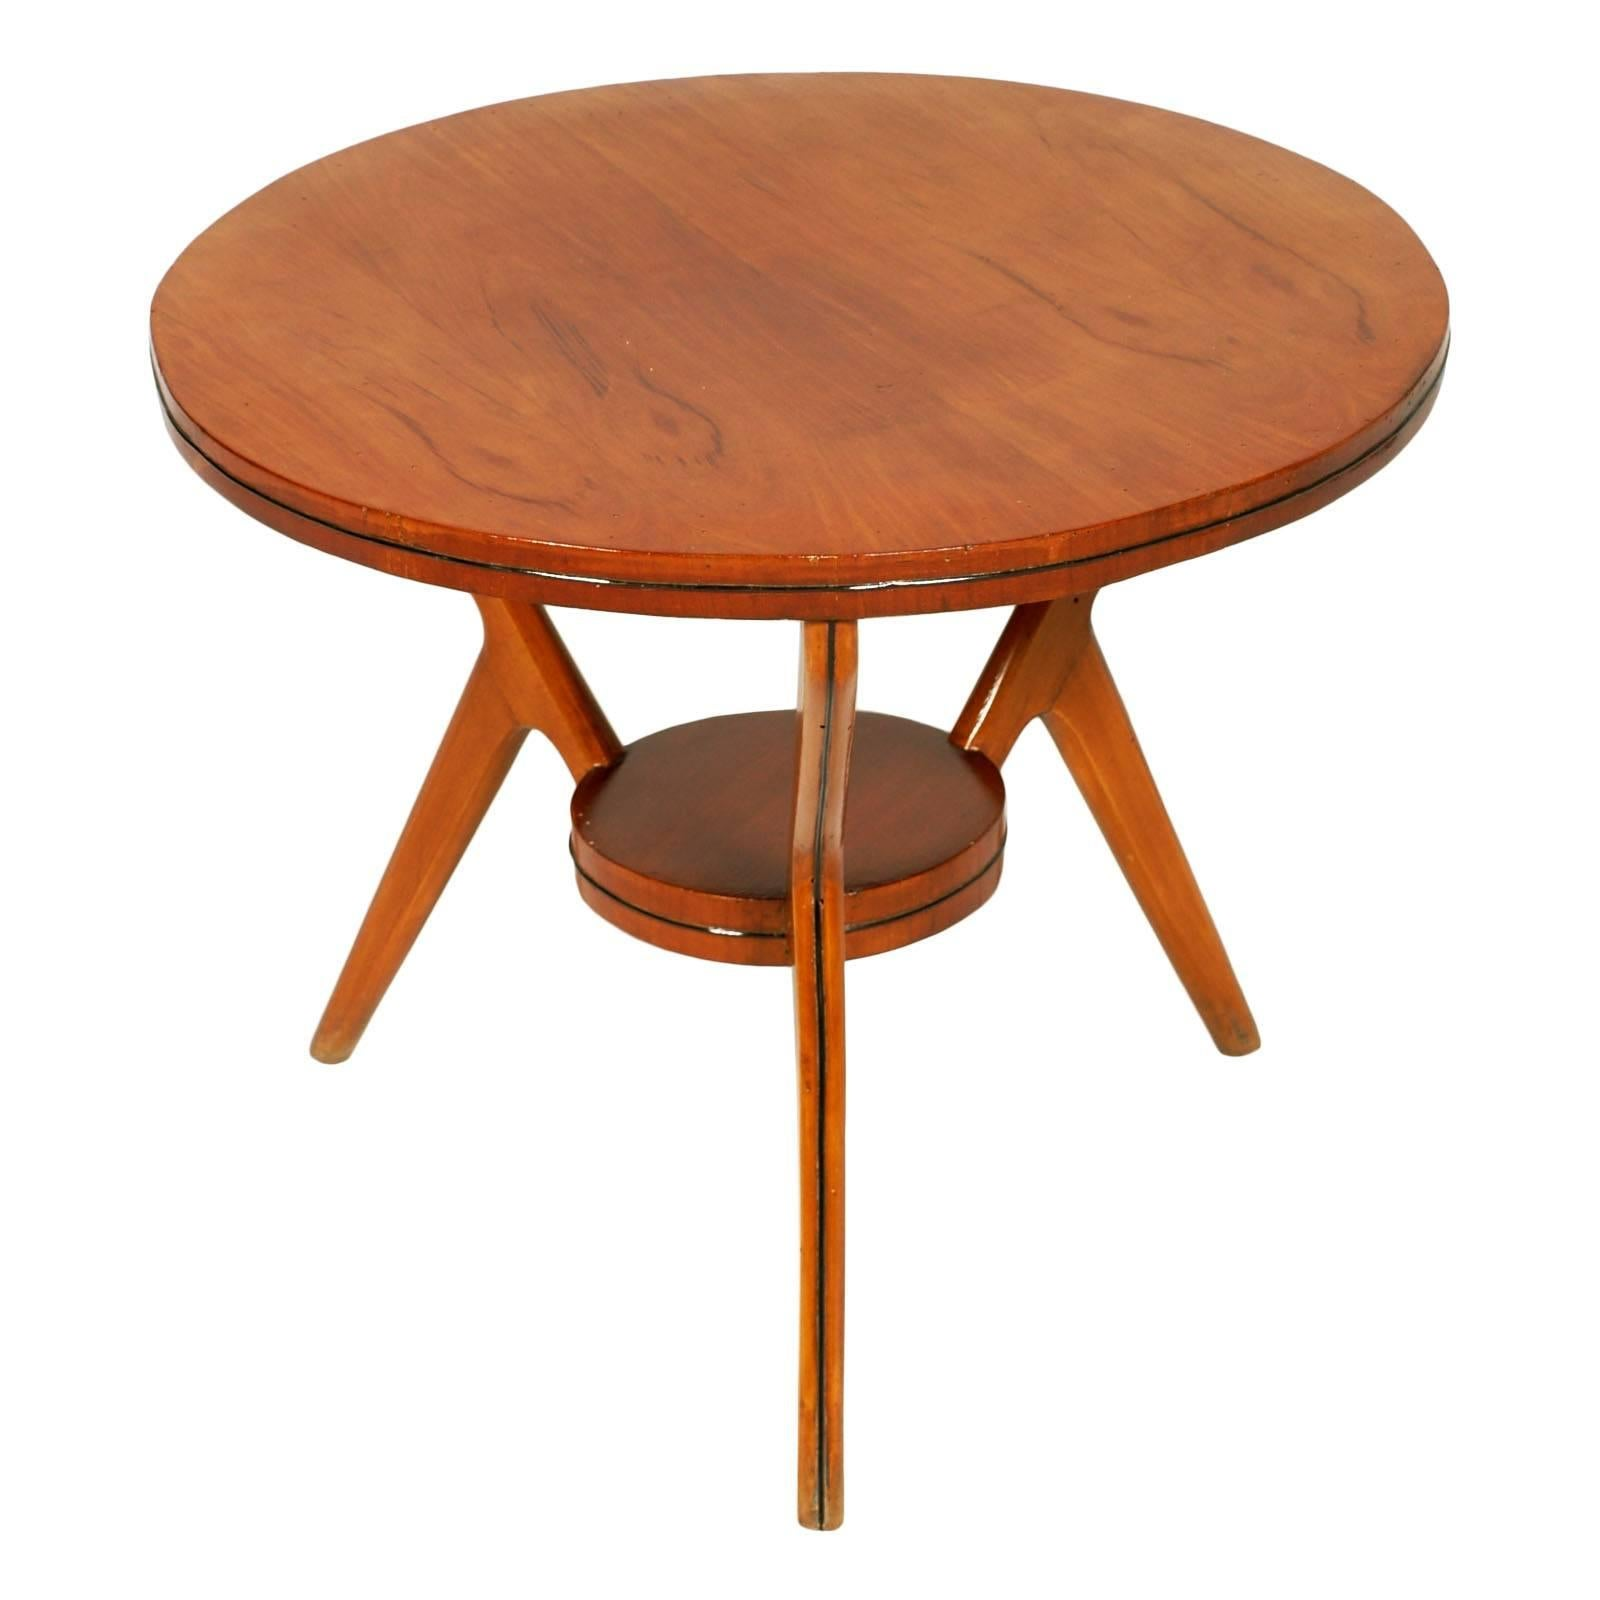 Midcentury Coffee Table Ico Parisi Attributed, Walnut and Beech Wax-Polished